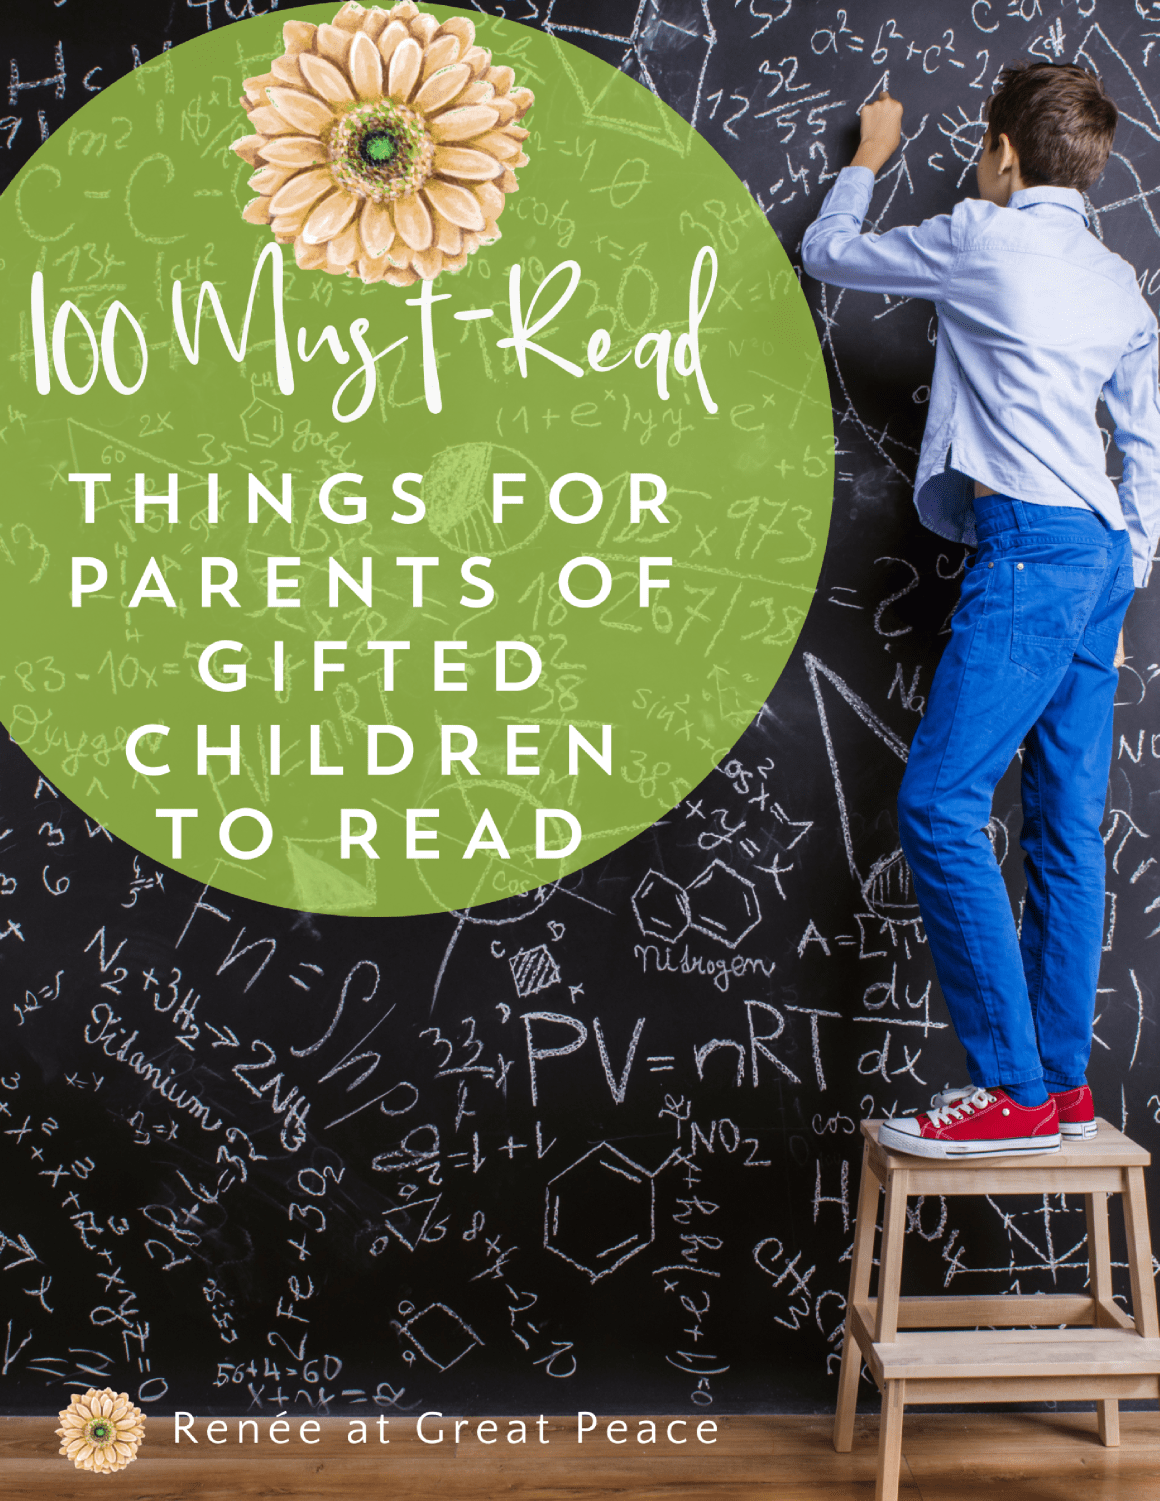 100 Must-Read Things for Parents of Gifted Children to Read Discover a wealth of reading resources for parents of gifted children to read; blogs, books, to websites offering information, you'll find 100 things.| Renée at Great Peace #gifted #gtchat #ihsnet #homeschool